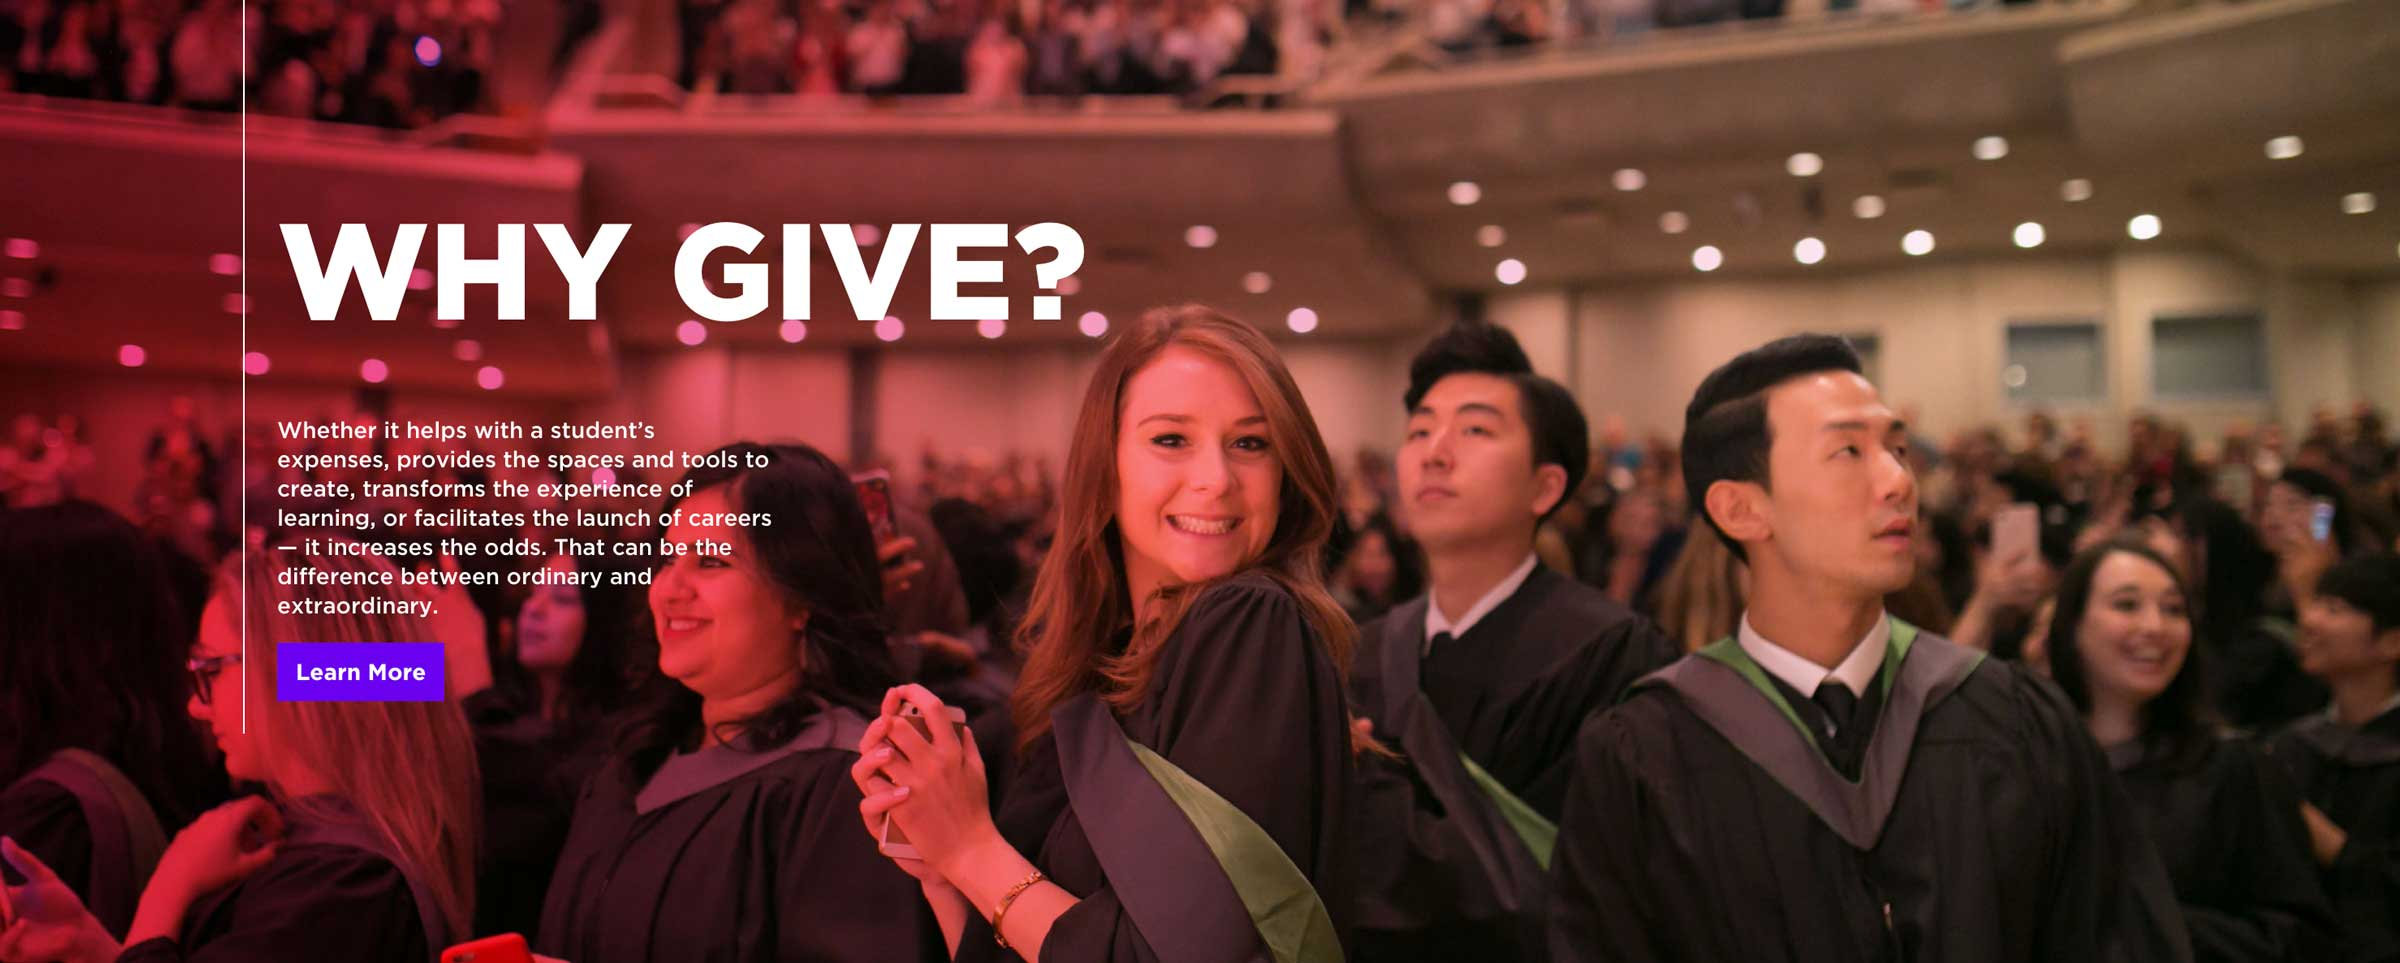 Interactive-OCADU-Ignite-Home-Why-Give.jpg